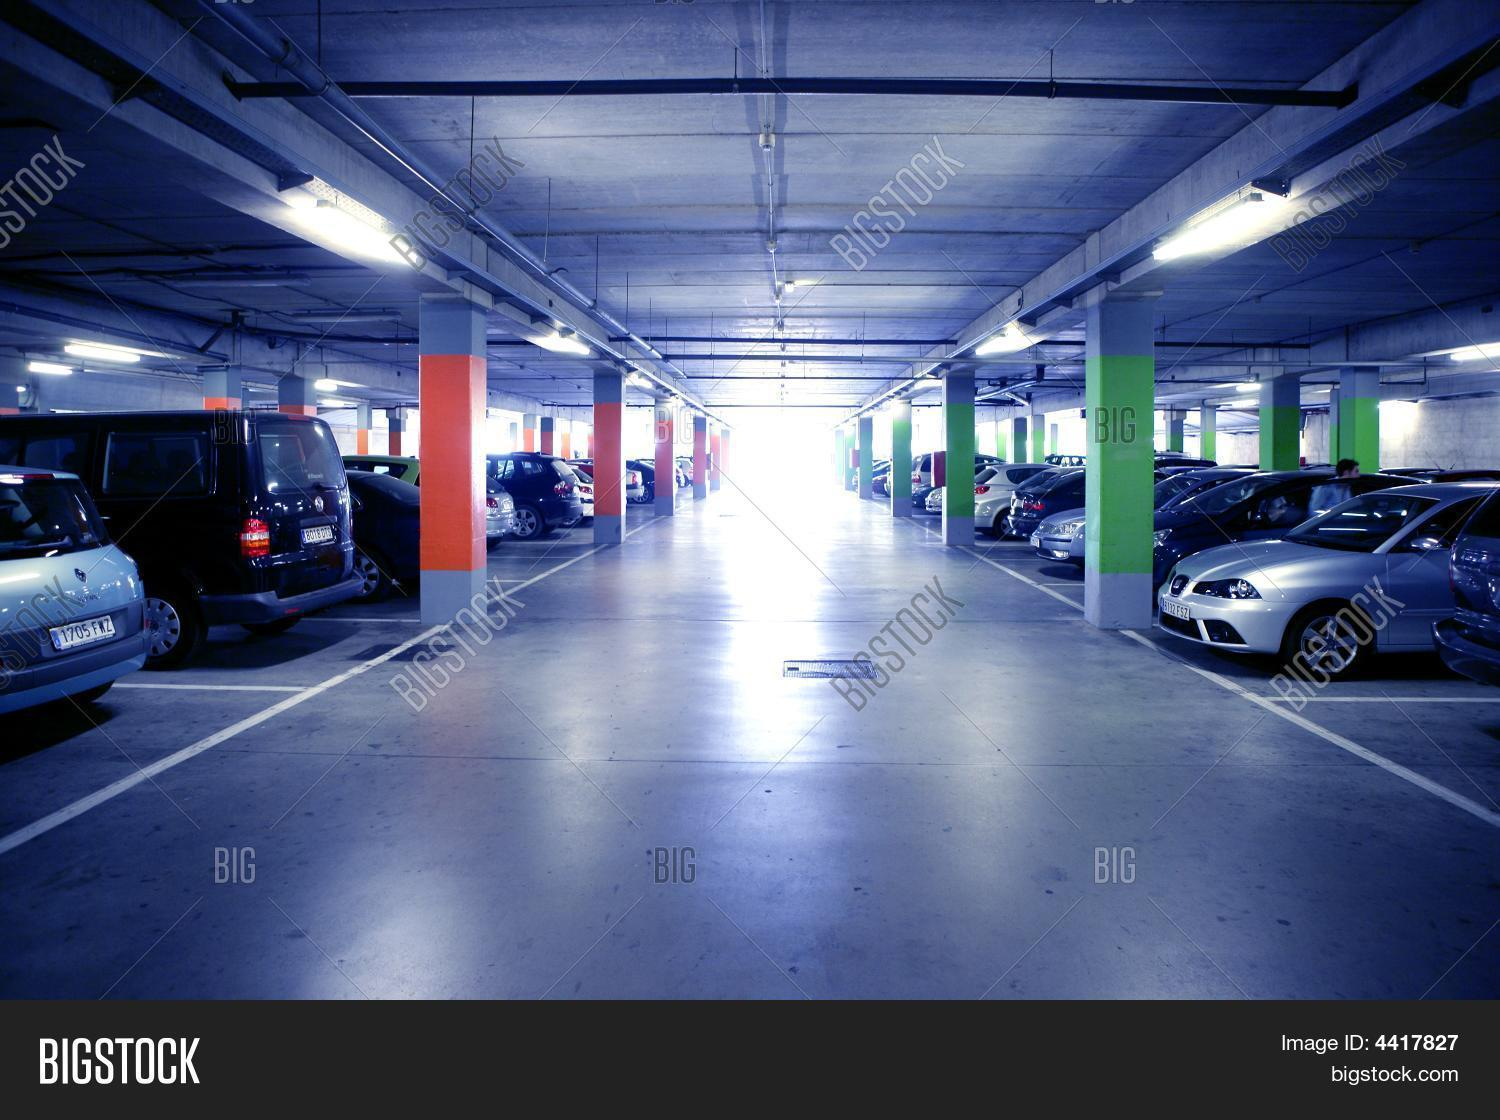 architecture,auto,automobile,basement,building,business,car,cement,city,concrete,corridor,dark,downtown,drive,empty,floor,garage,gray,group,horizontal,illuminated,indoors,interior,large,life,lights,metal,modern,new,park,parking,perspective,public,road,scene,signs,structure,technology,traffic,transport,transportation,travel,urban,vehicle,wall,window,yellow